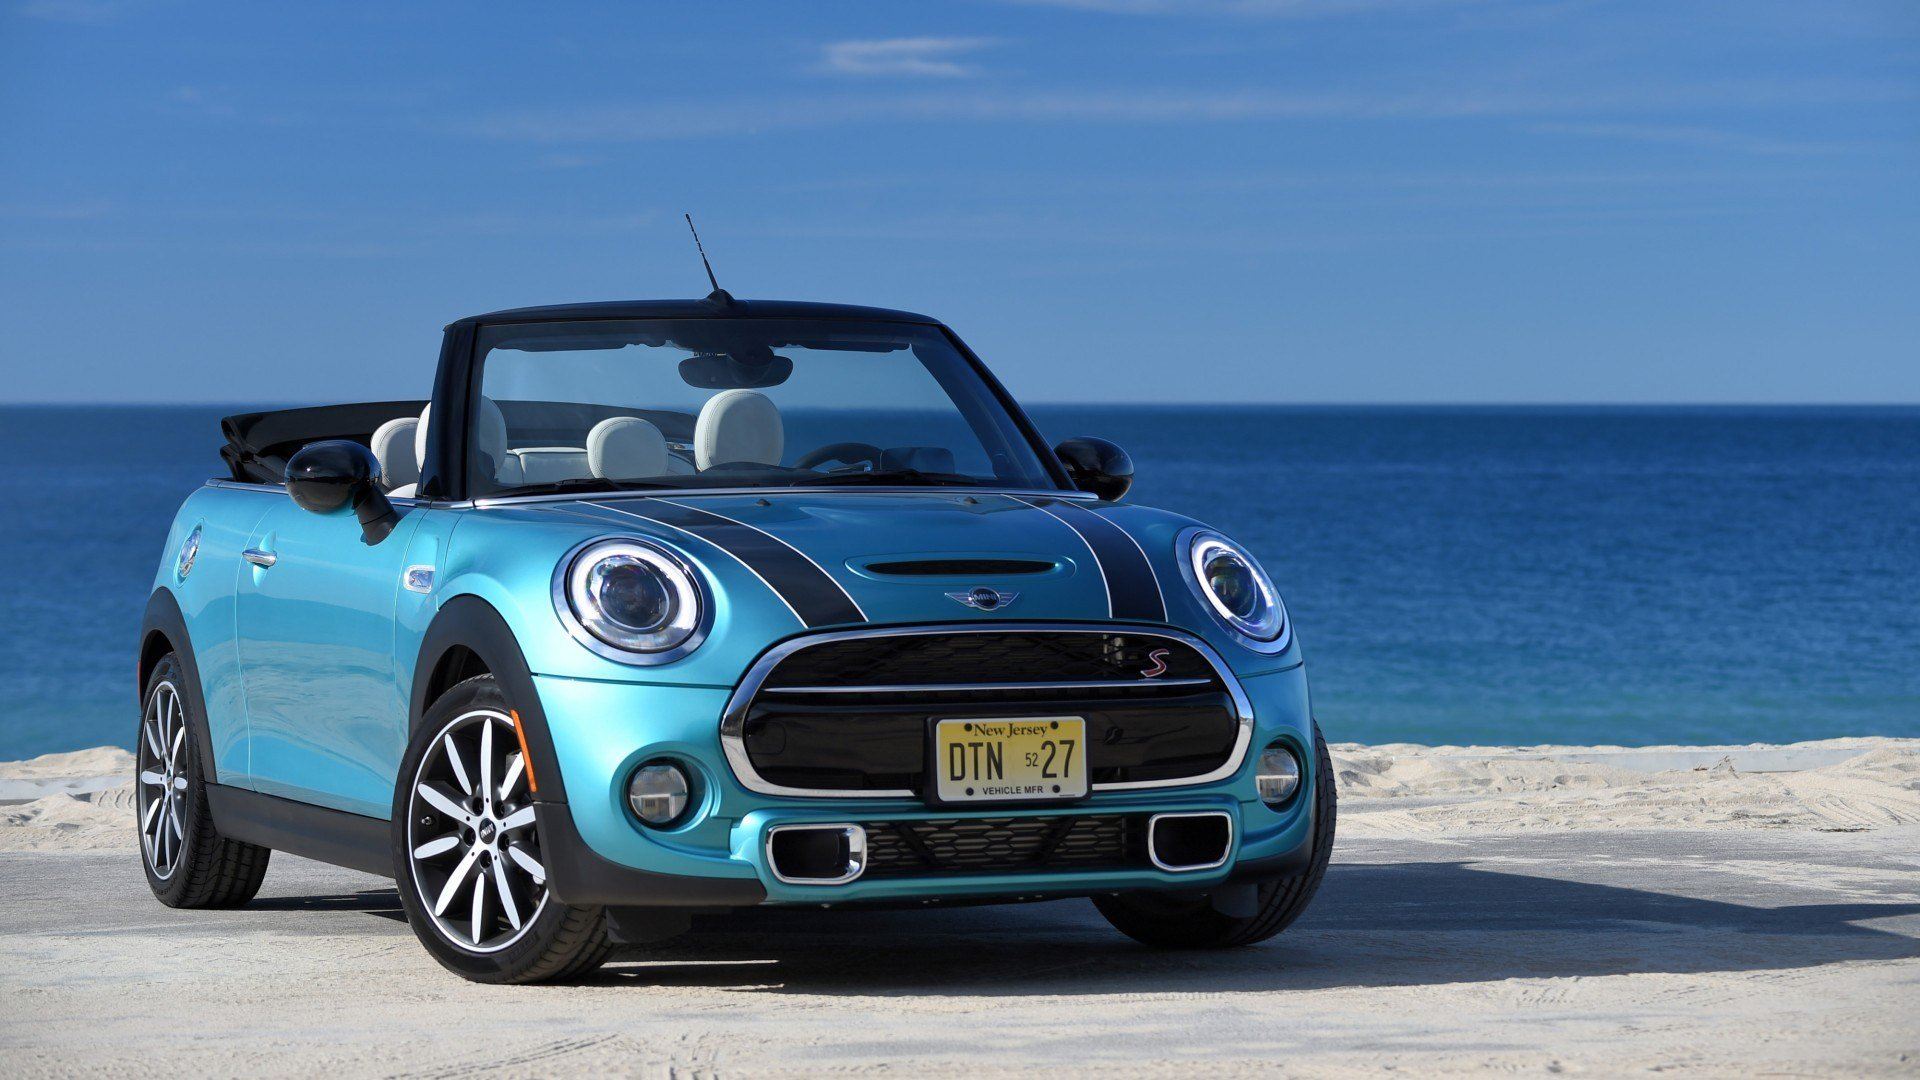 Latest 2016 Mini Cooper Convertible Wallpaper Hd Car Wallpapers Free Download